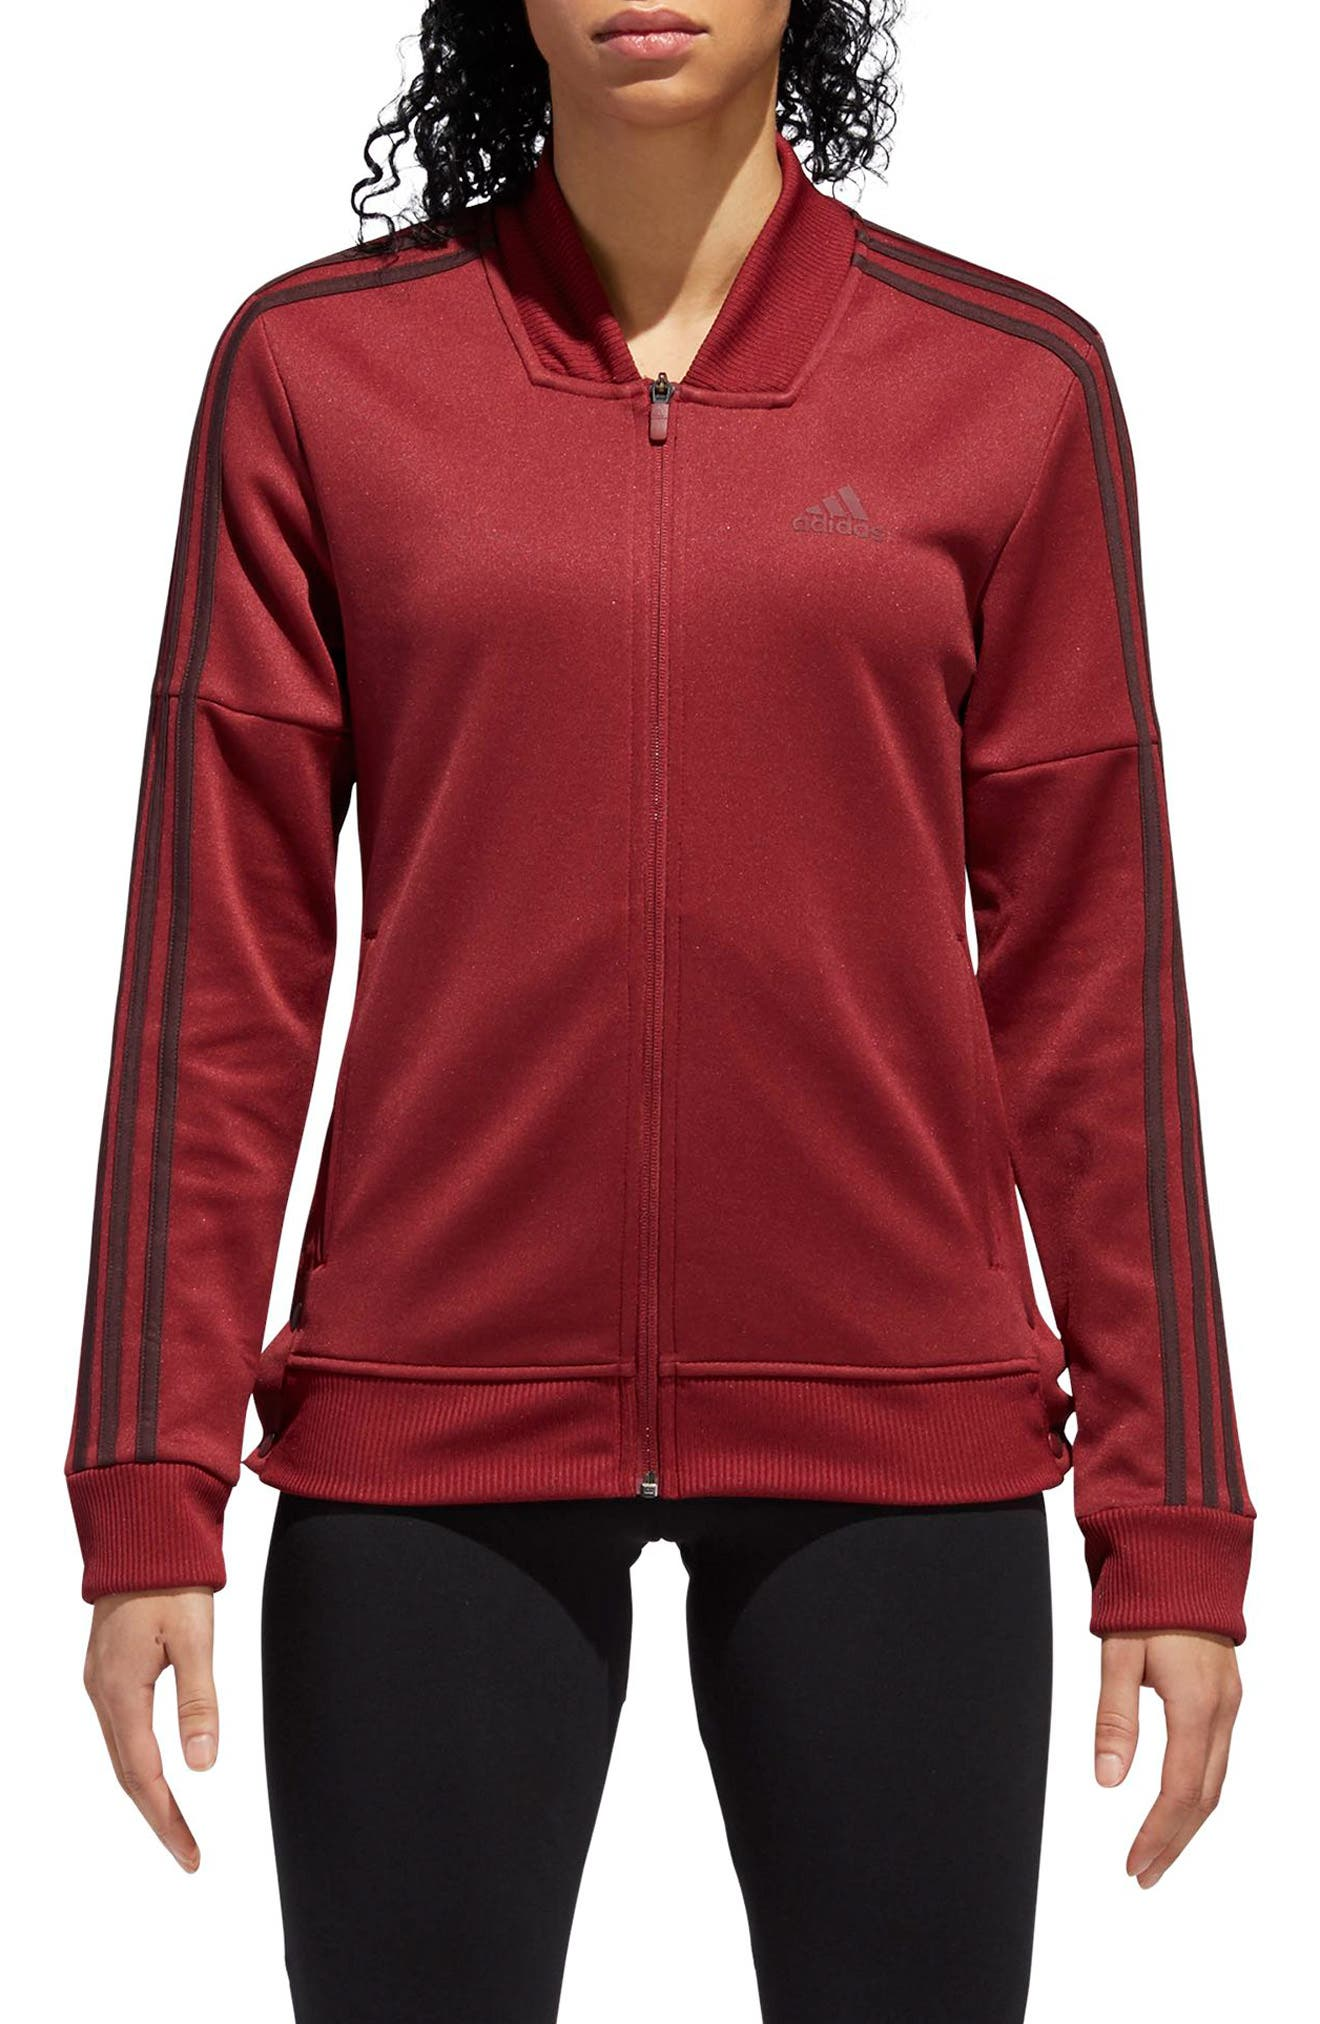 Snap Hem Track Jacket,                         Main,                         color, NOBLE MAROON/ NIGHT RED